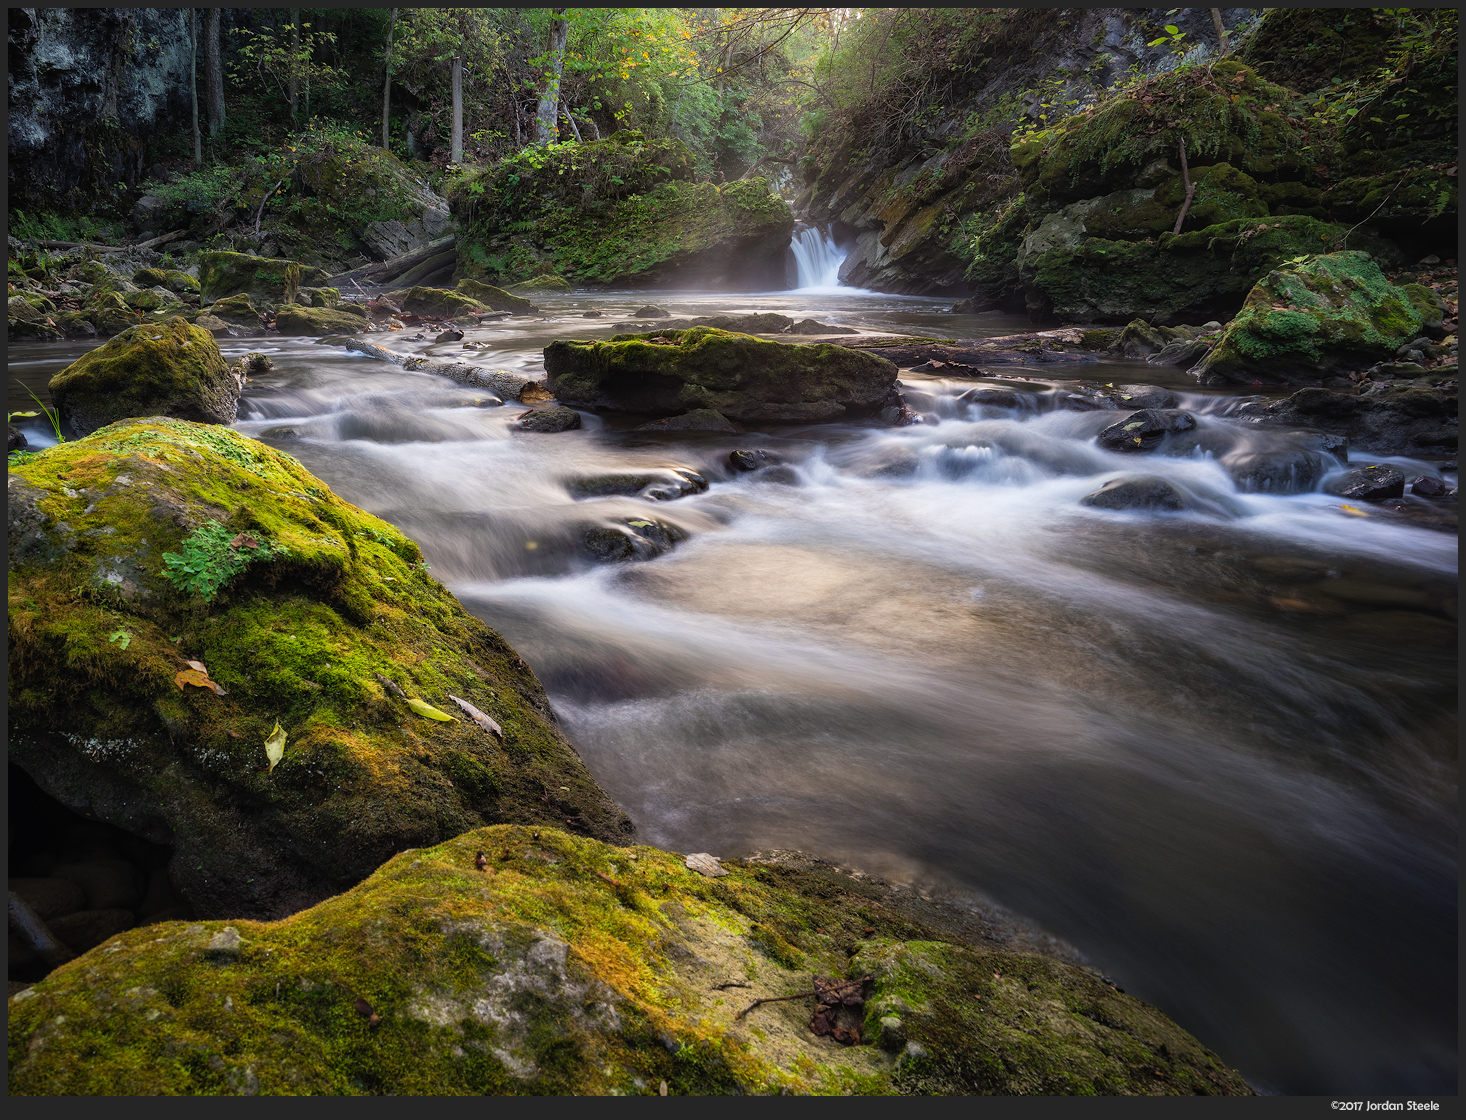 Massies Creek - Sony A7 II with Zeiss FE 16-35mm f/4 ZA OSS @